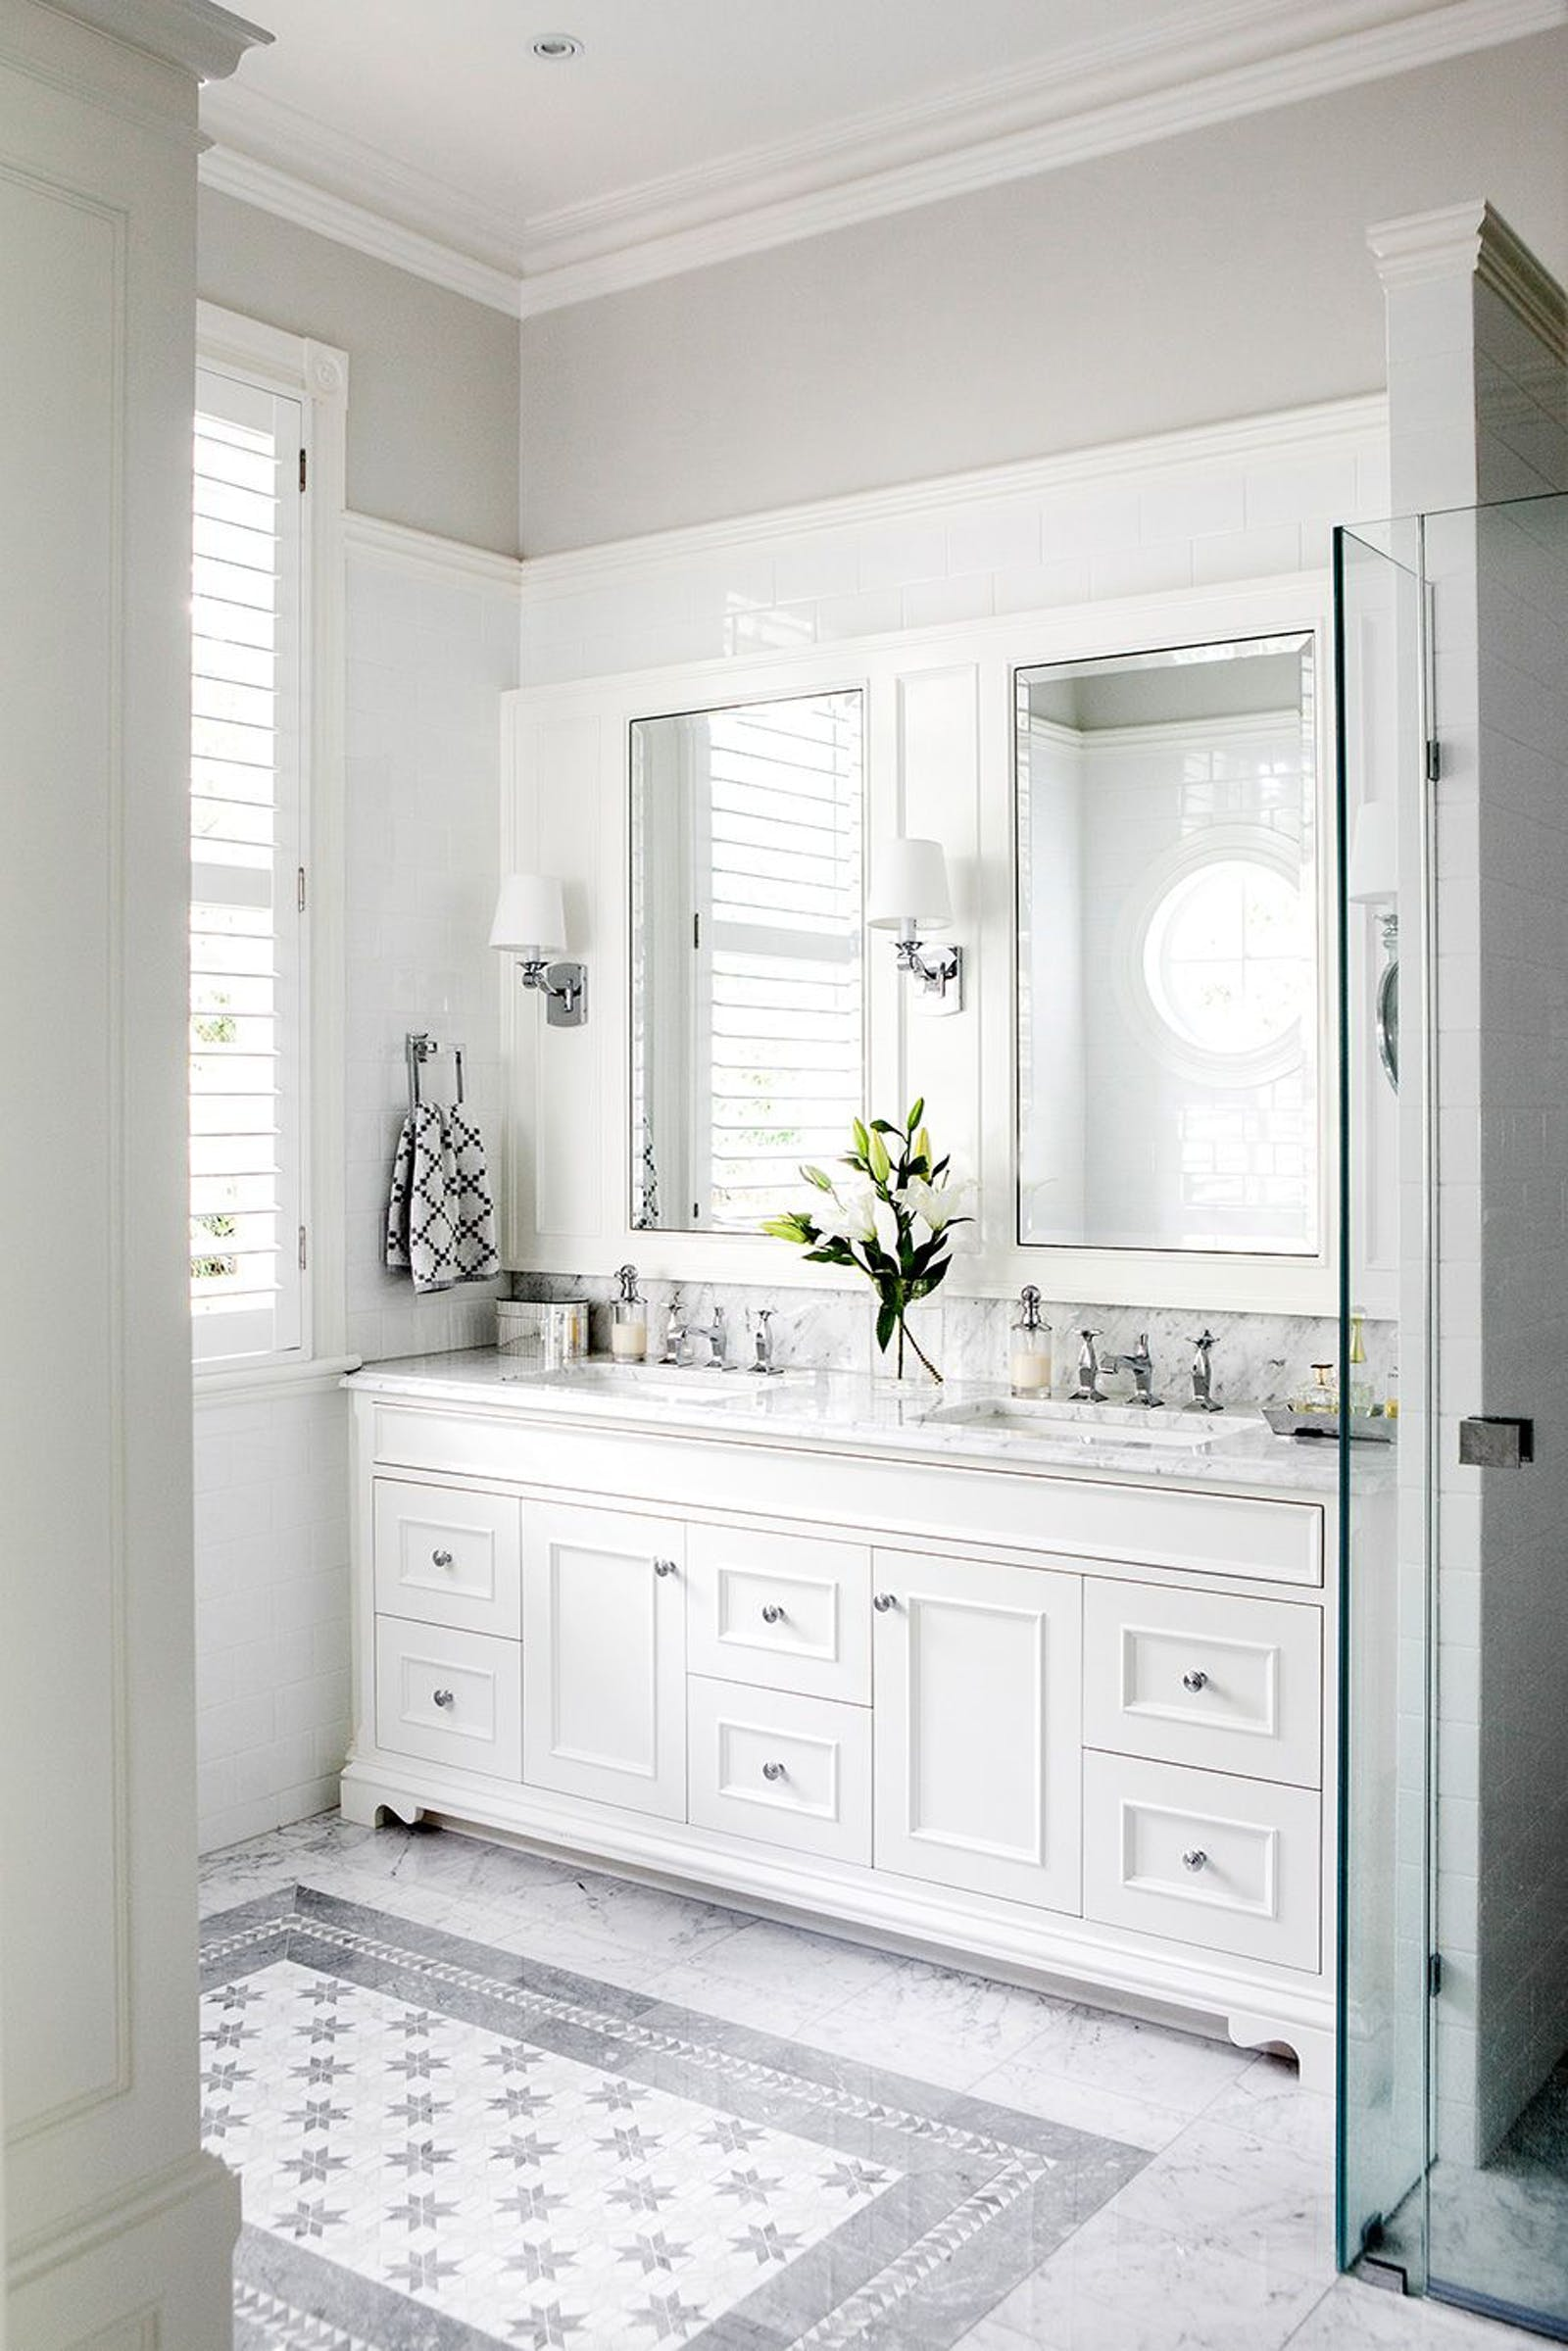 Bathroom in white with vintage cabinets and floral details